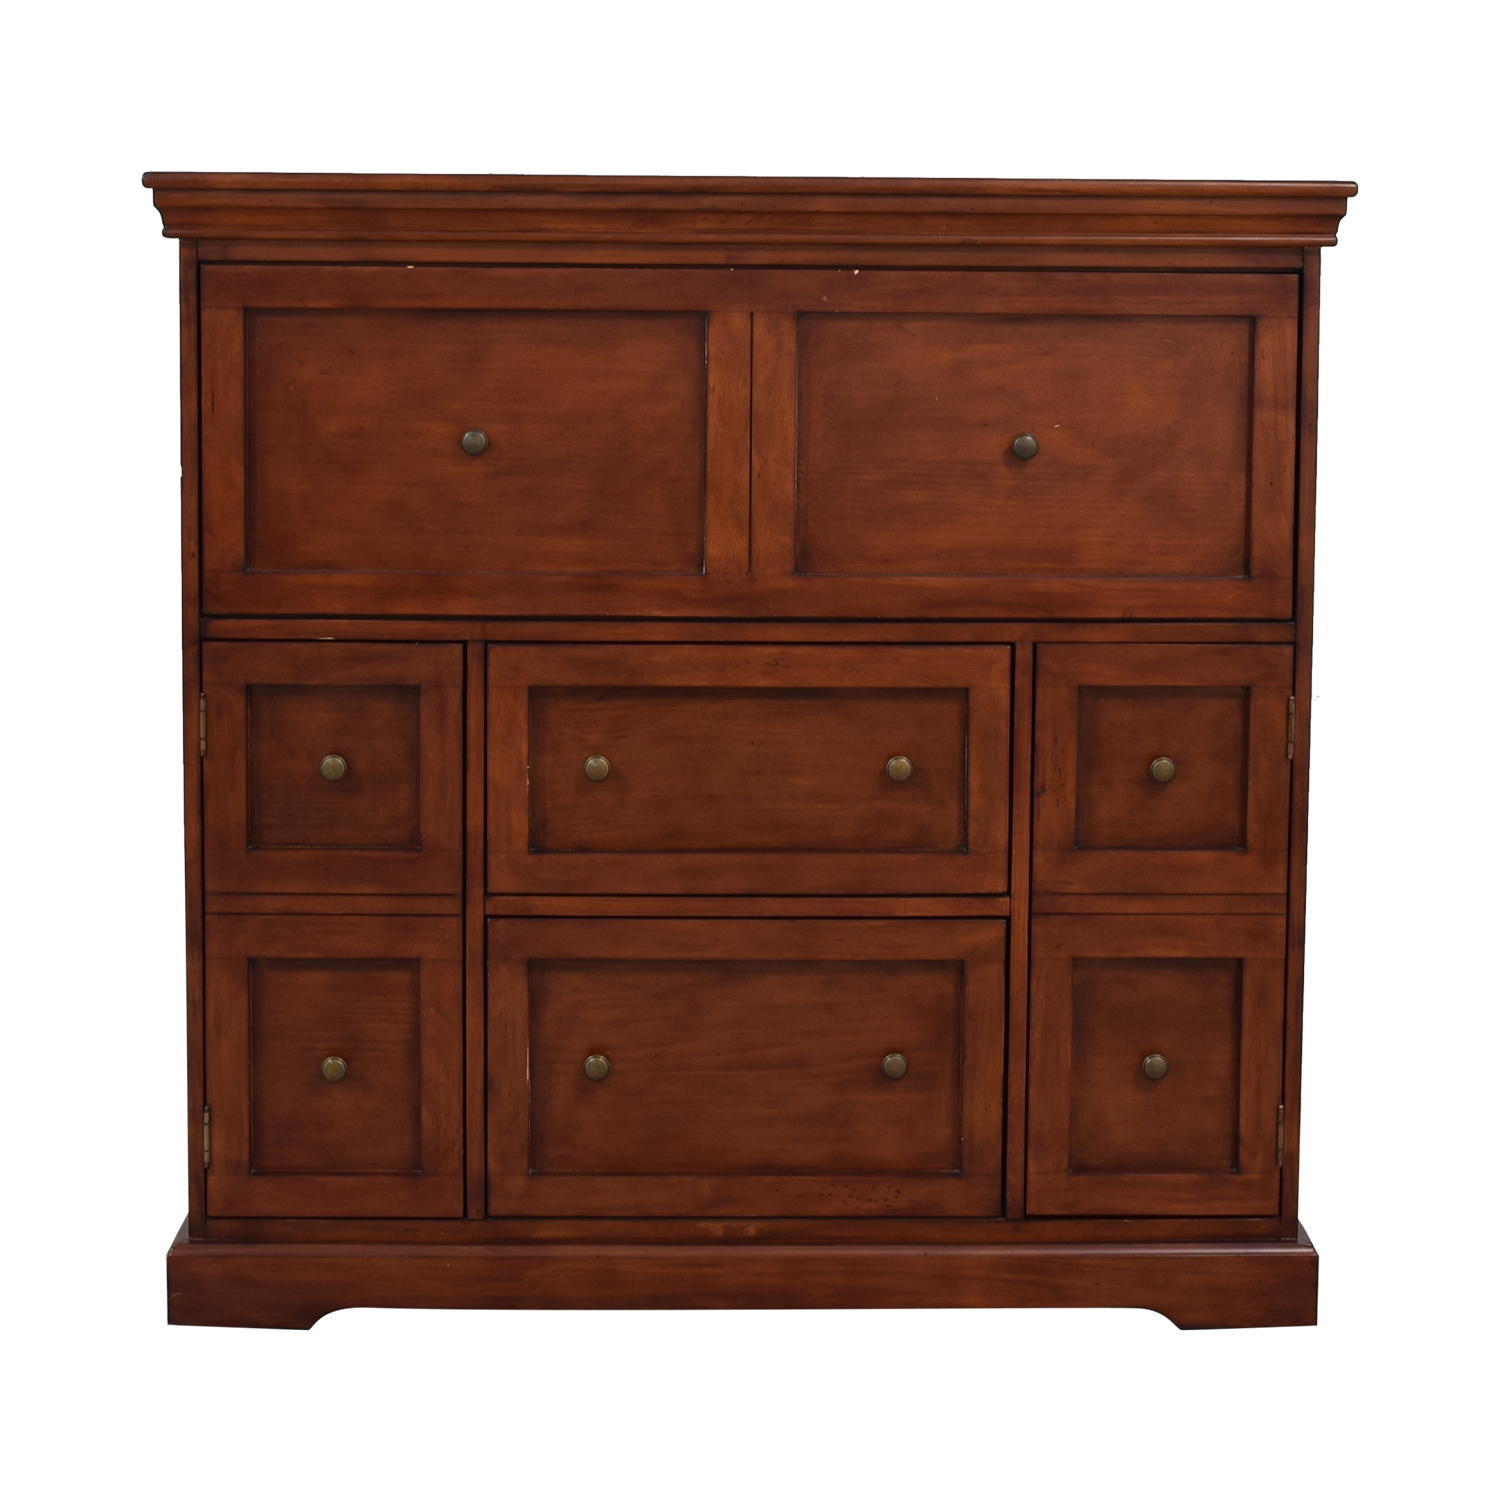 Ballard Designs Ballard Designs Eastman Large Brown Secretary Desk second hand